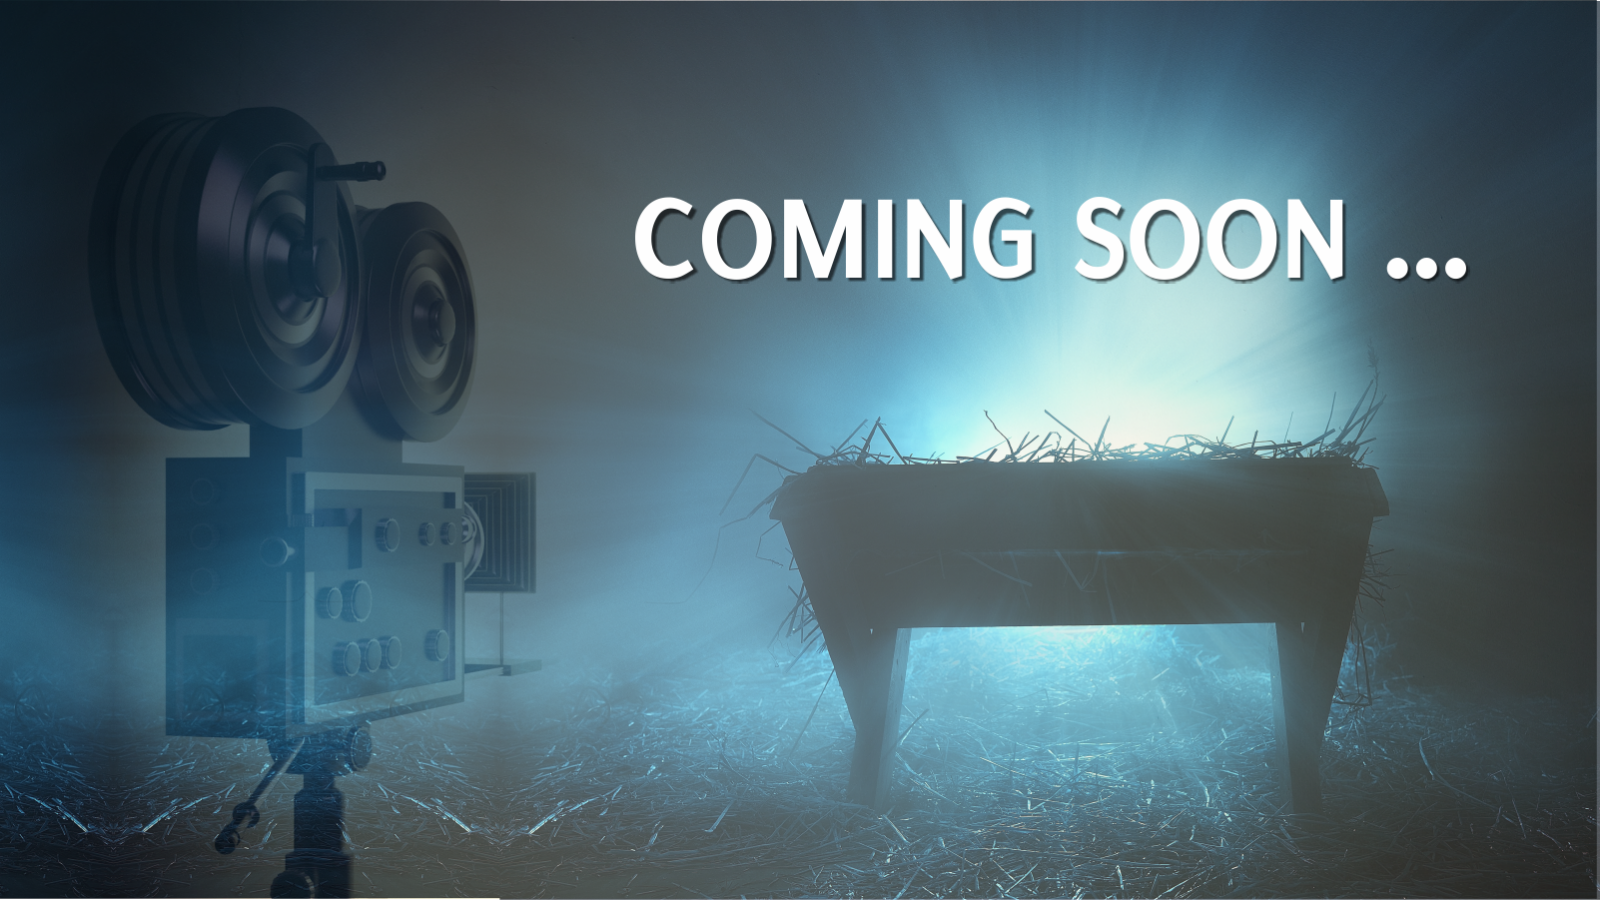 Advent - Coming Soon